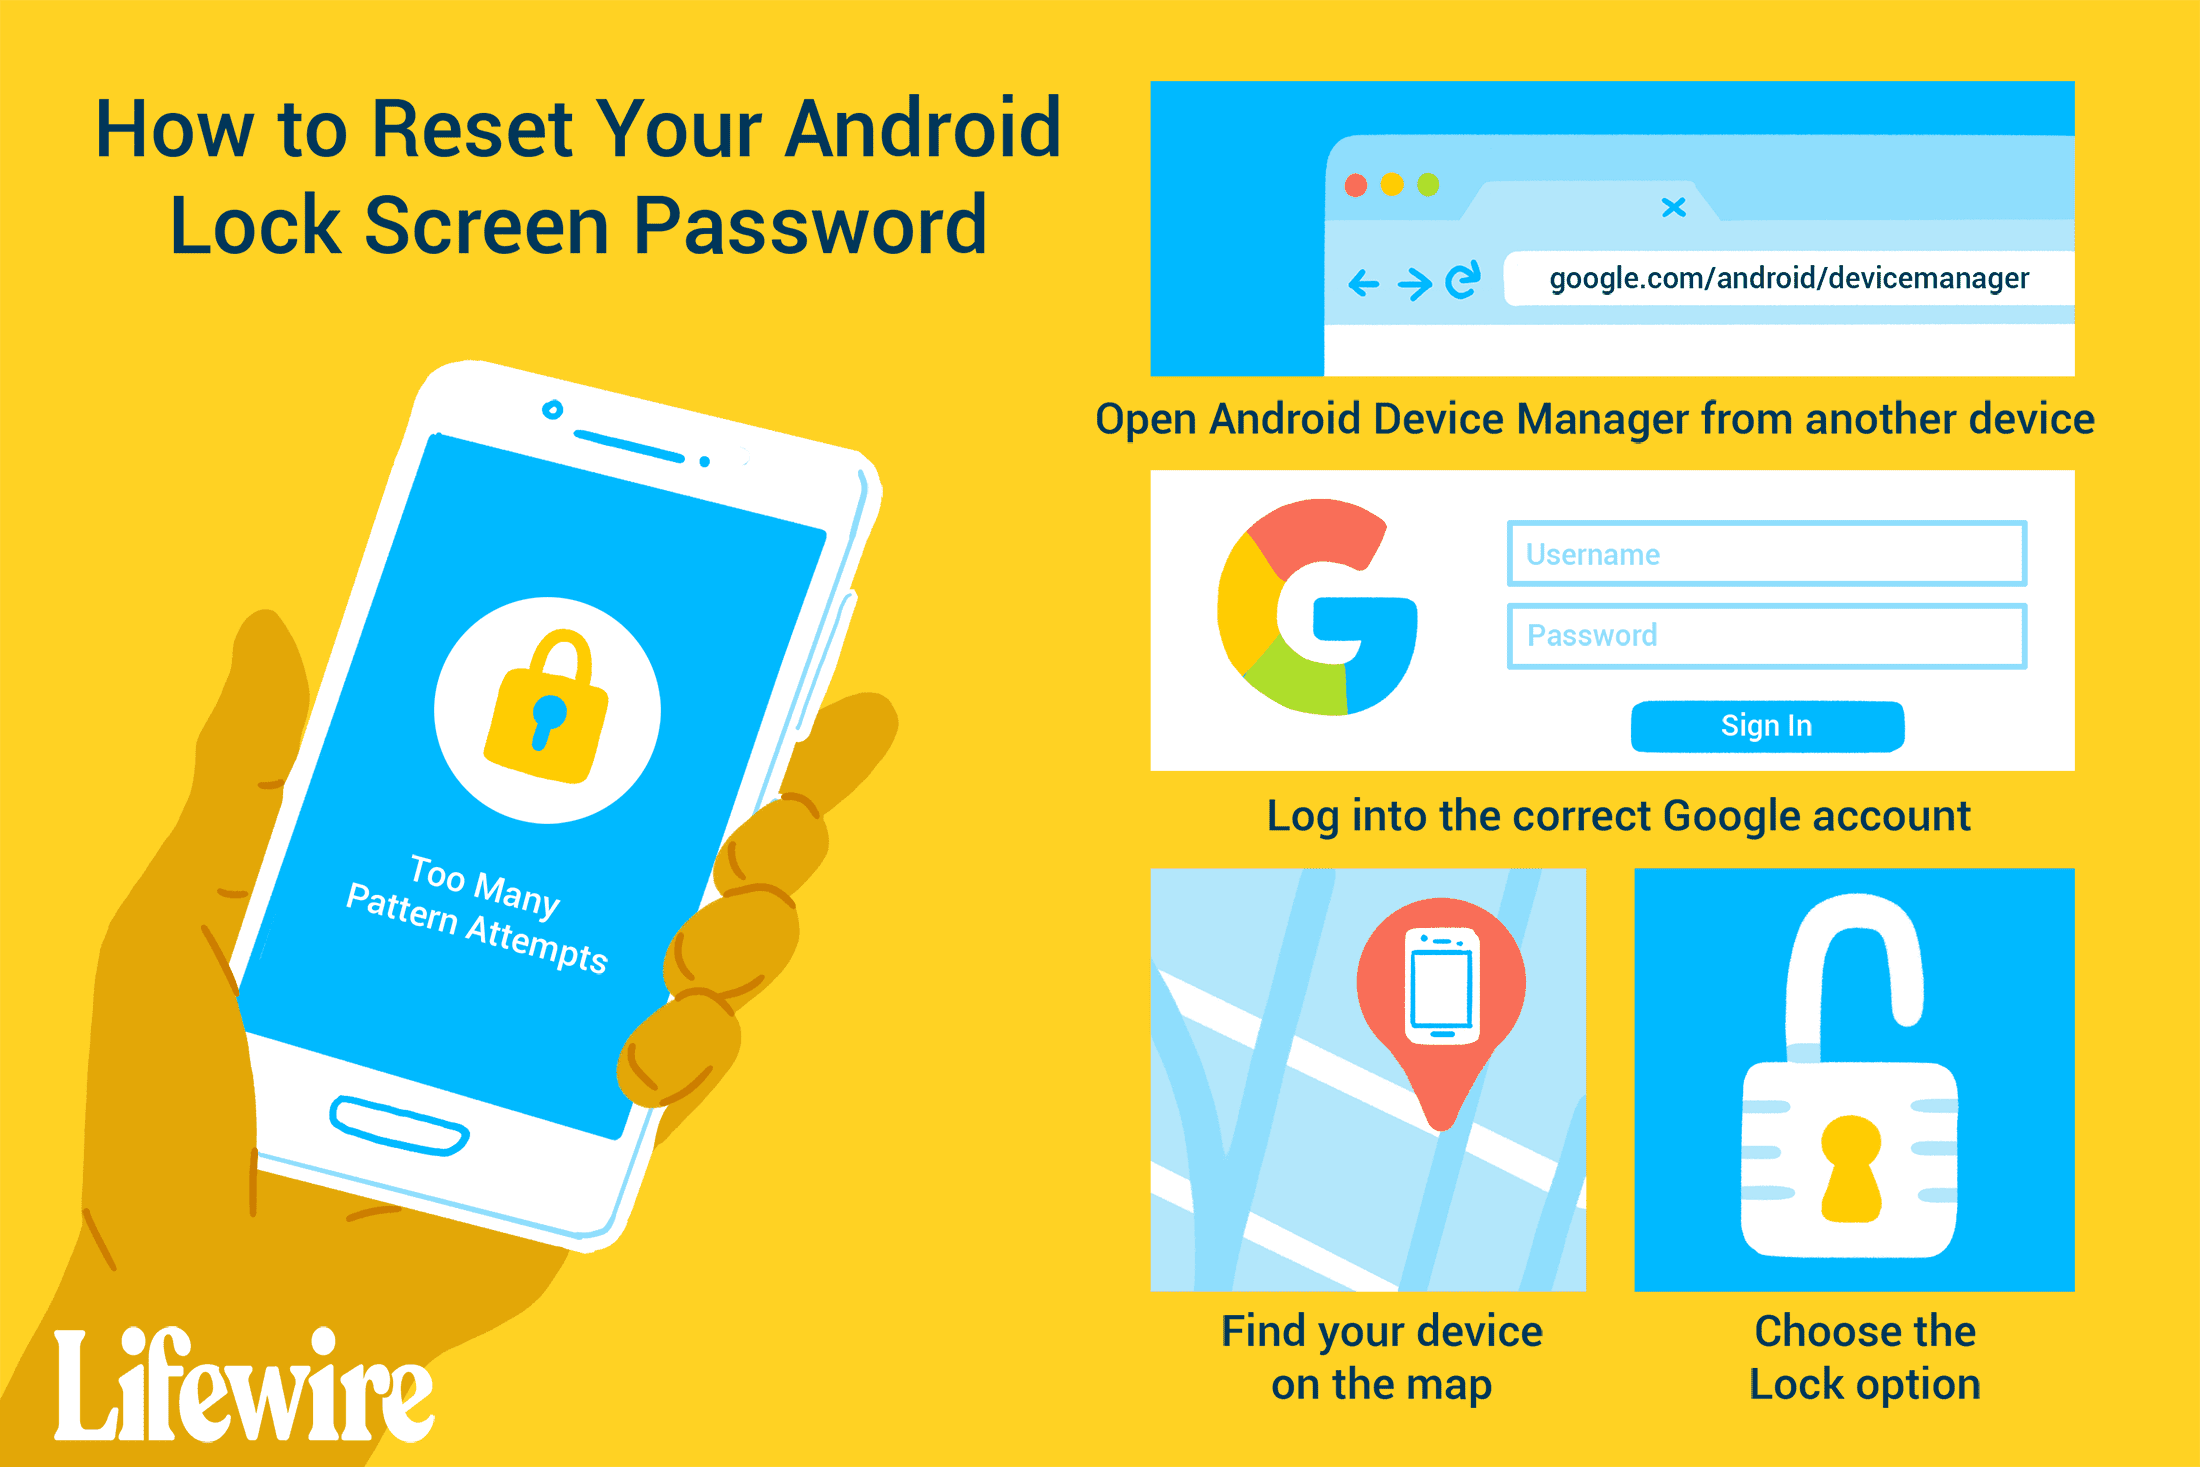 Illustration showing how to reset your android lock screen password.